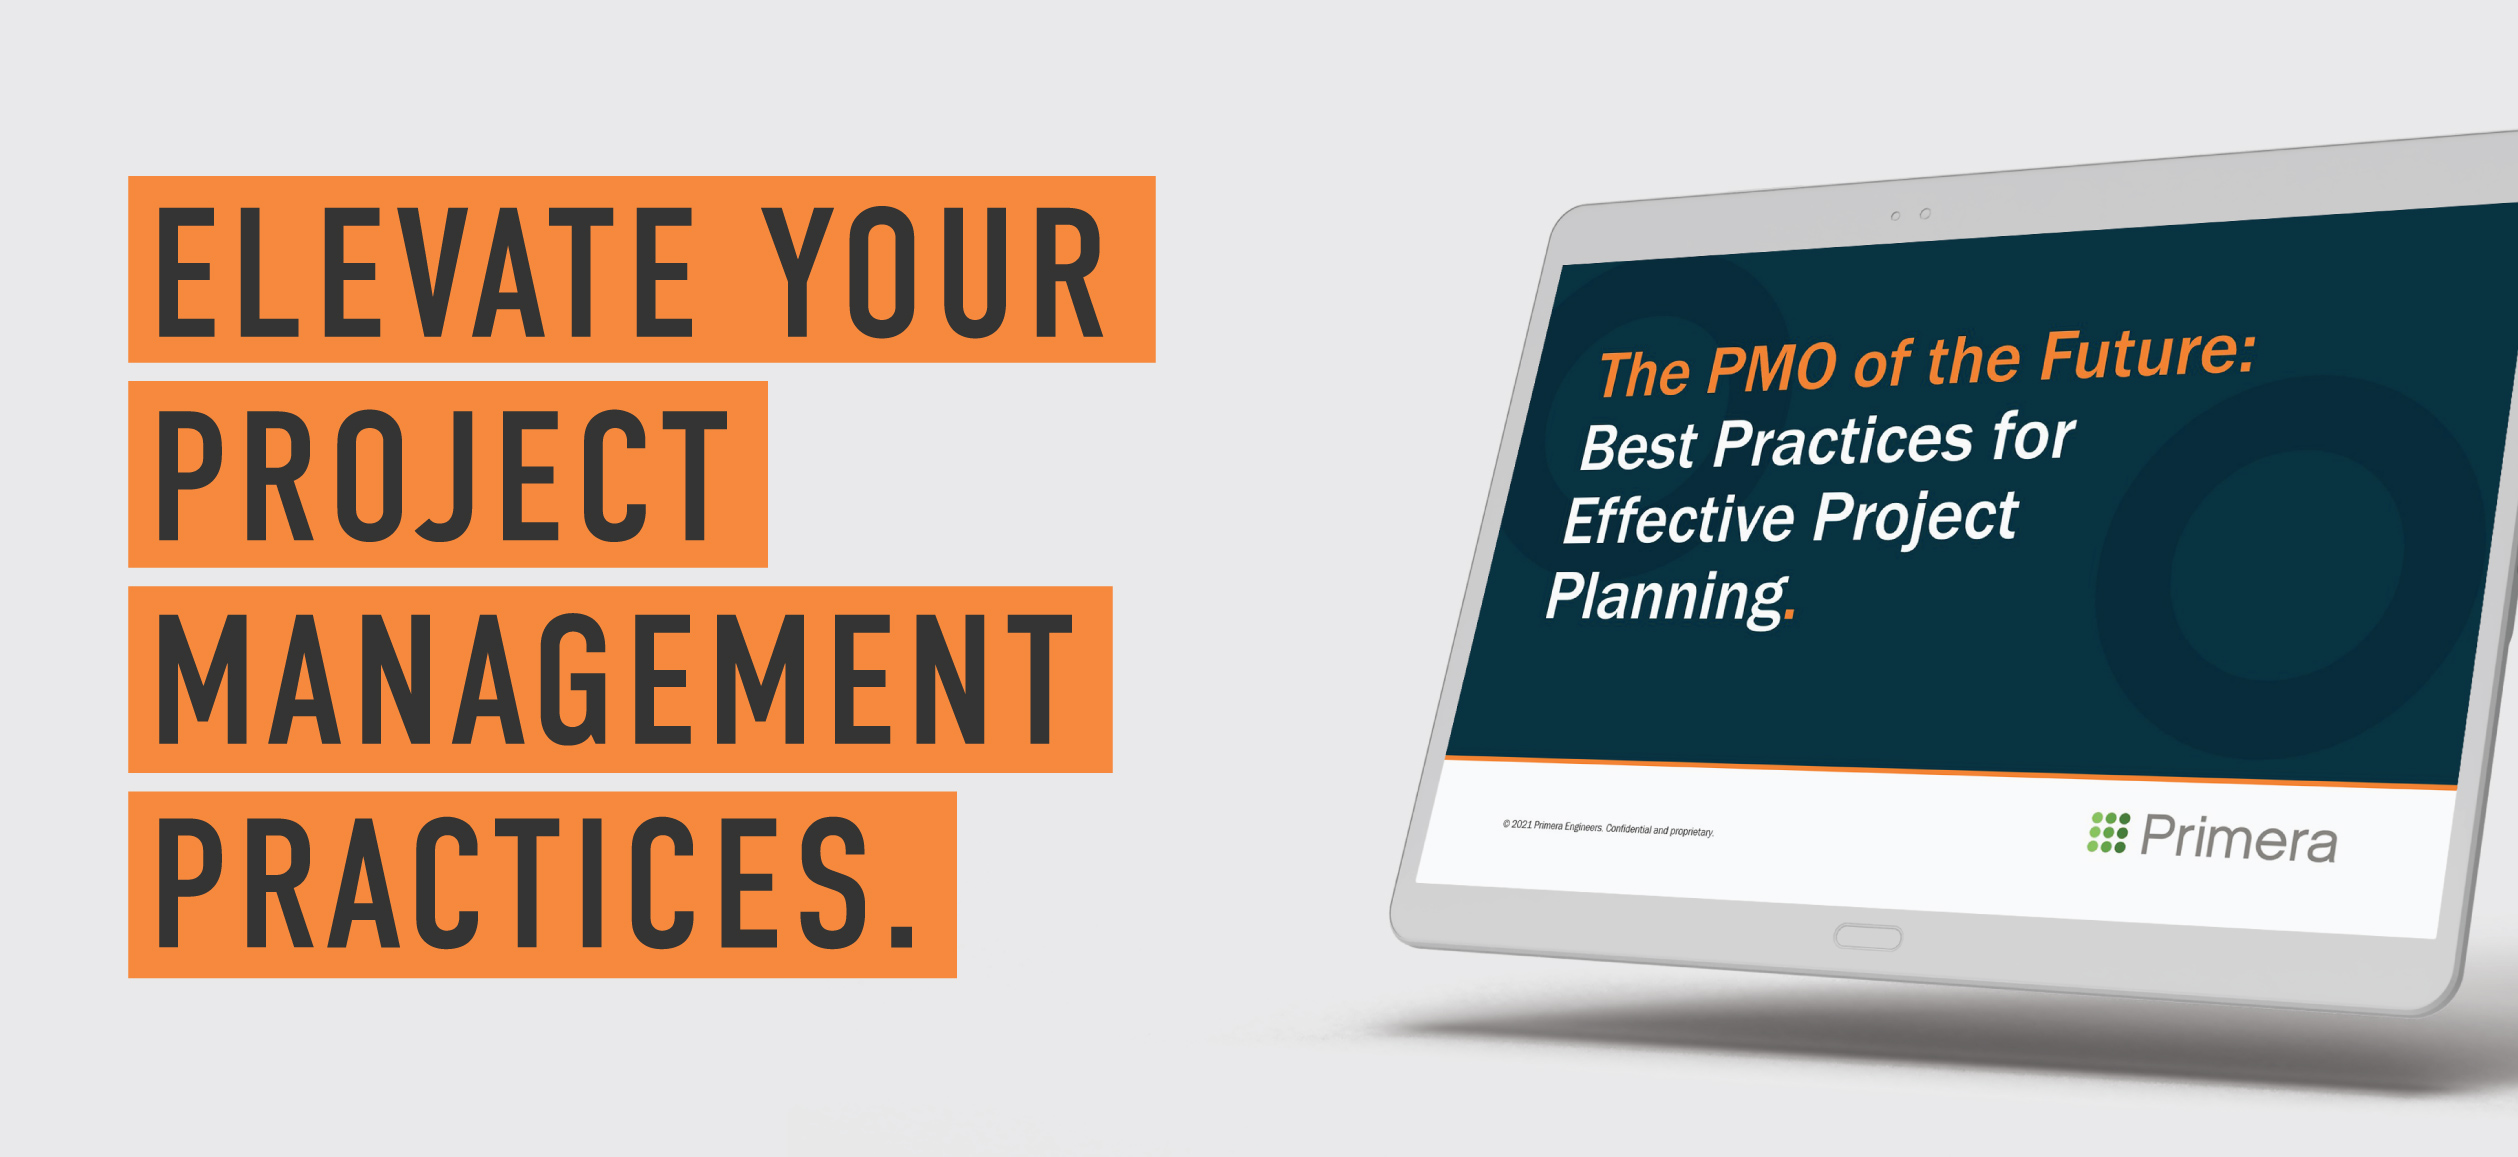 Elevate your Project Management Practices